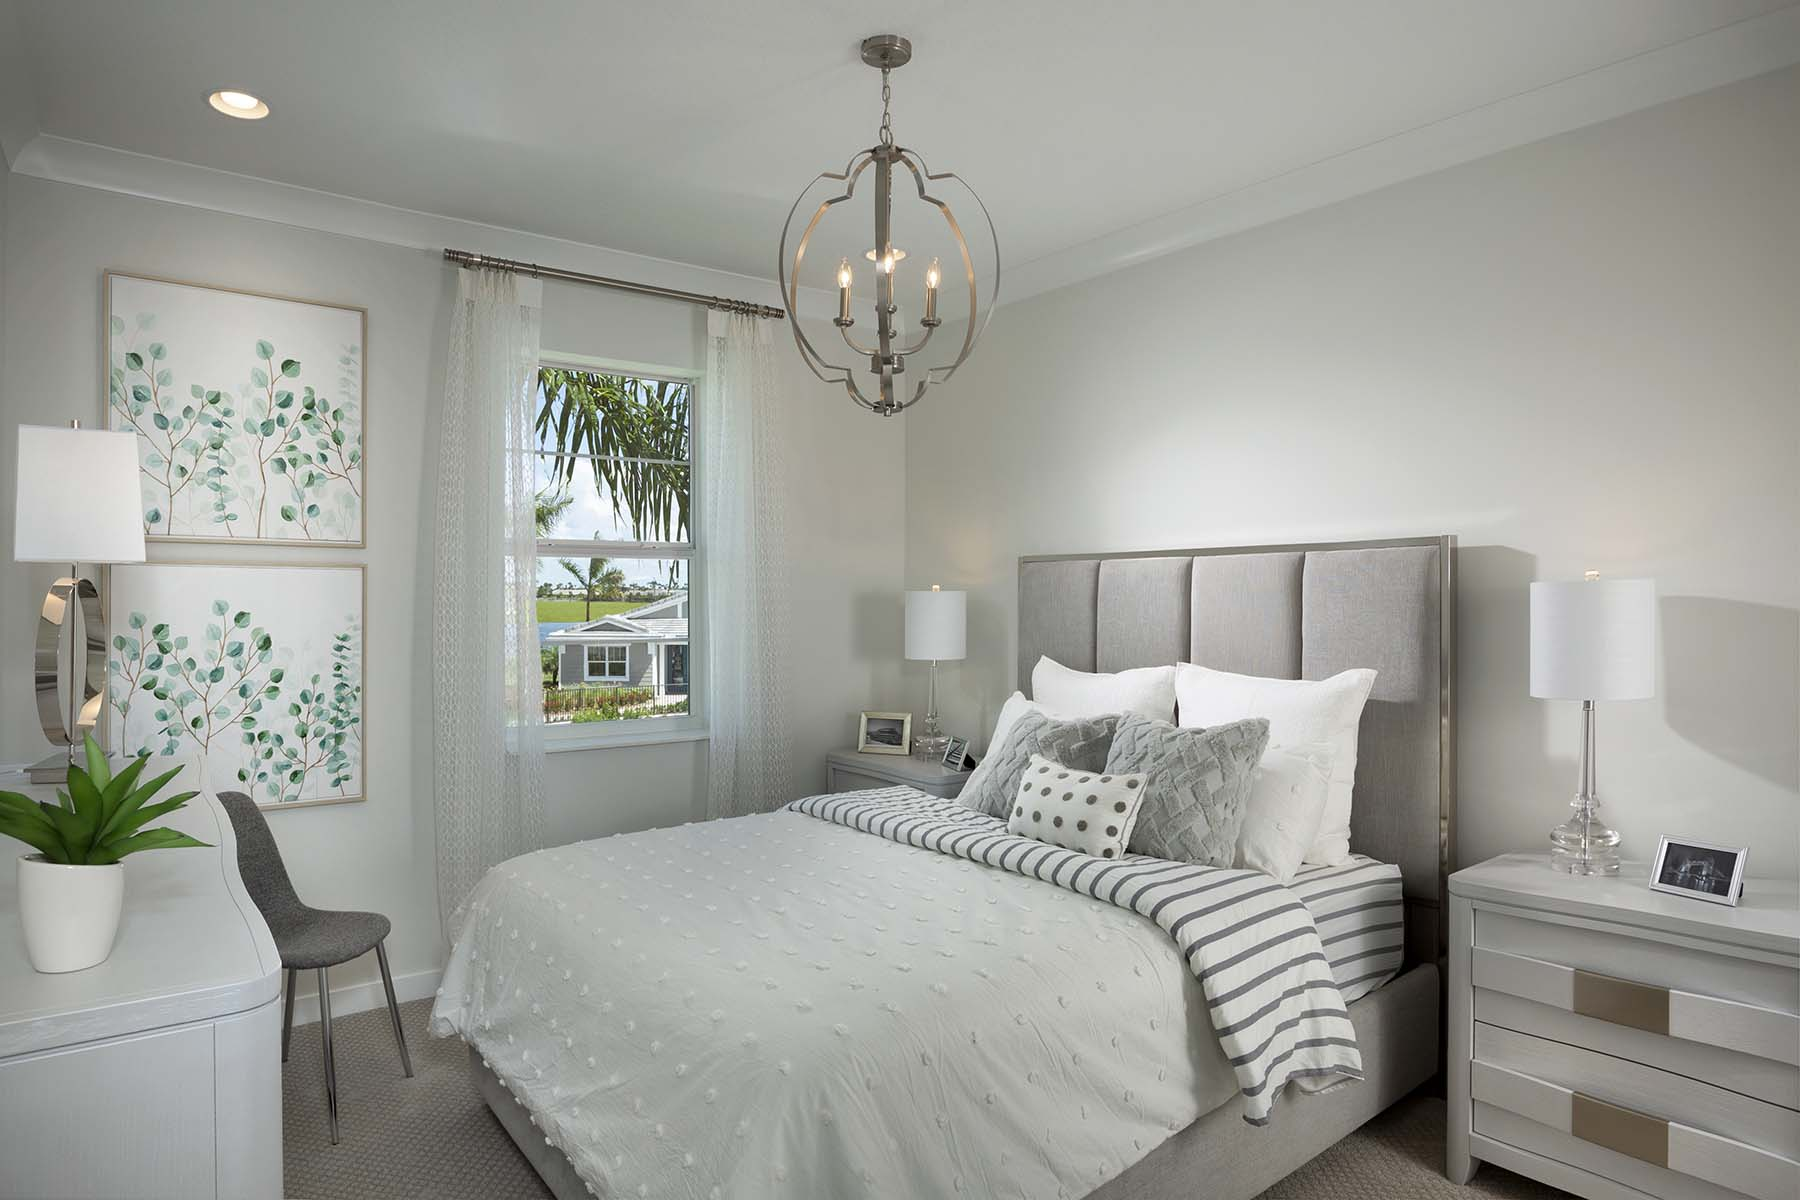 Rowan Plan Bedroom at Tradition - Manderlie in Port St. Lucie Florida by Mattamy Homes